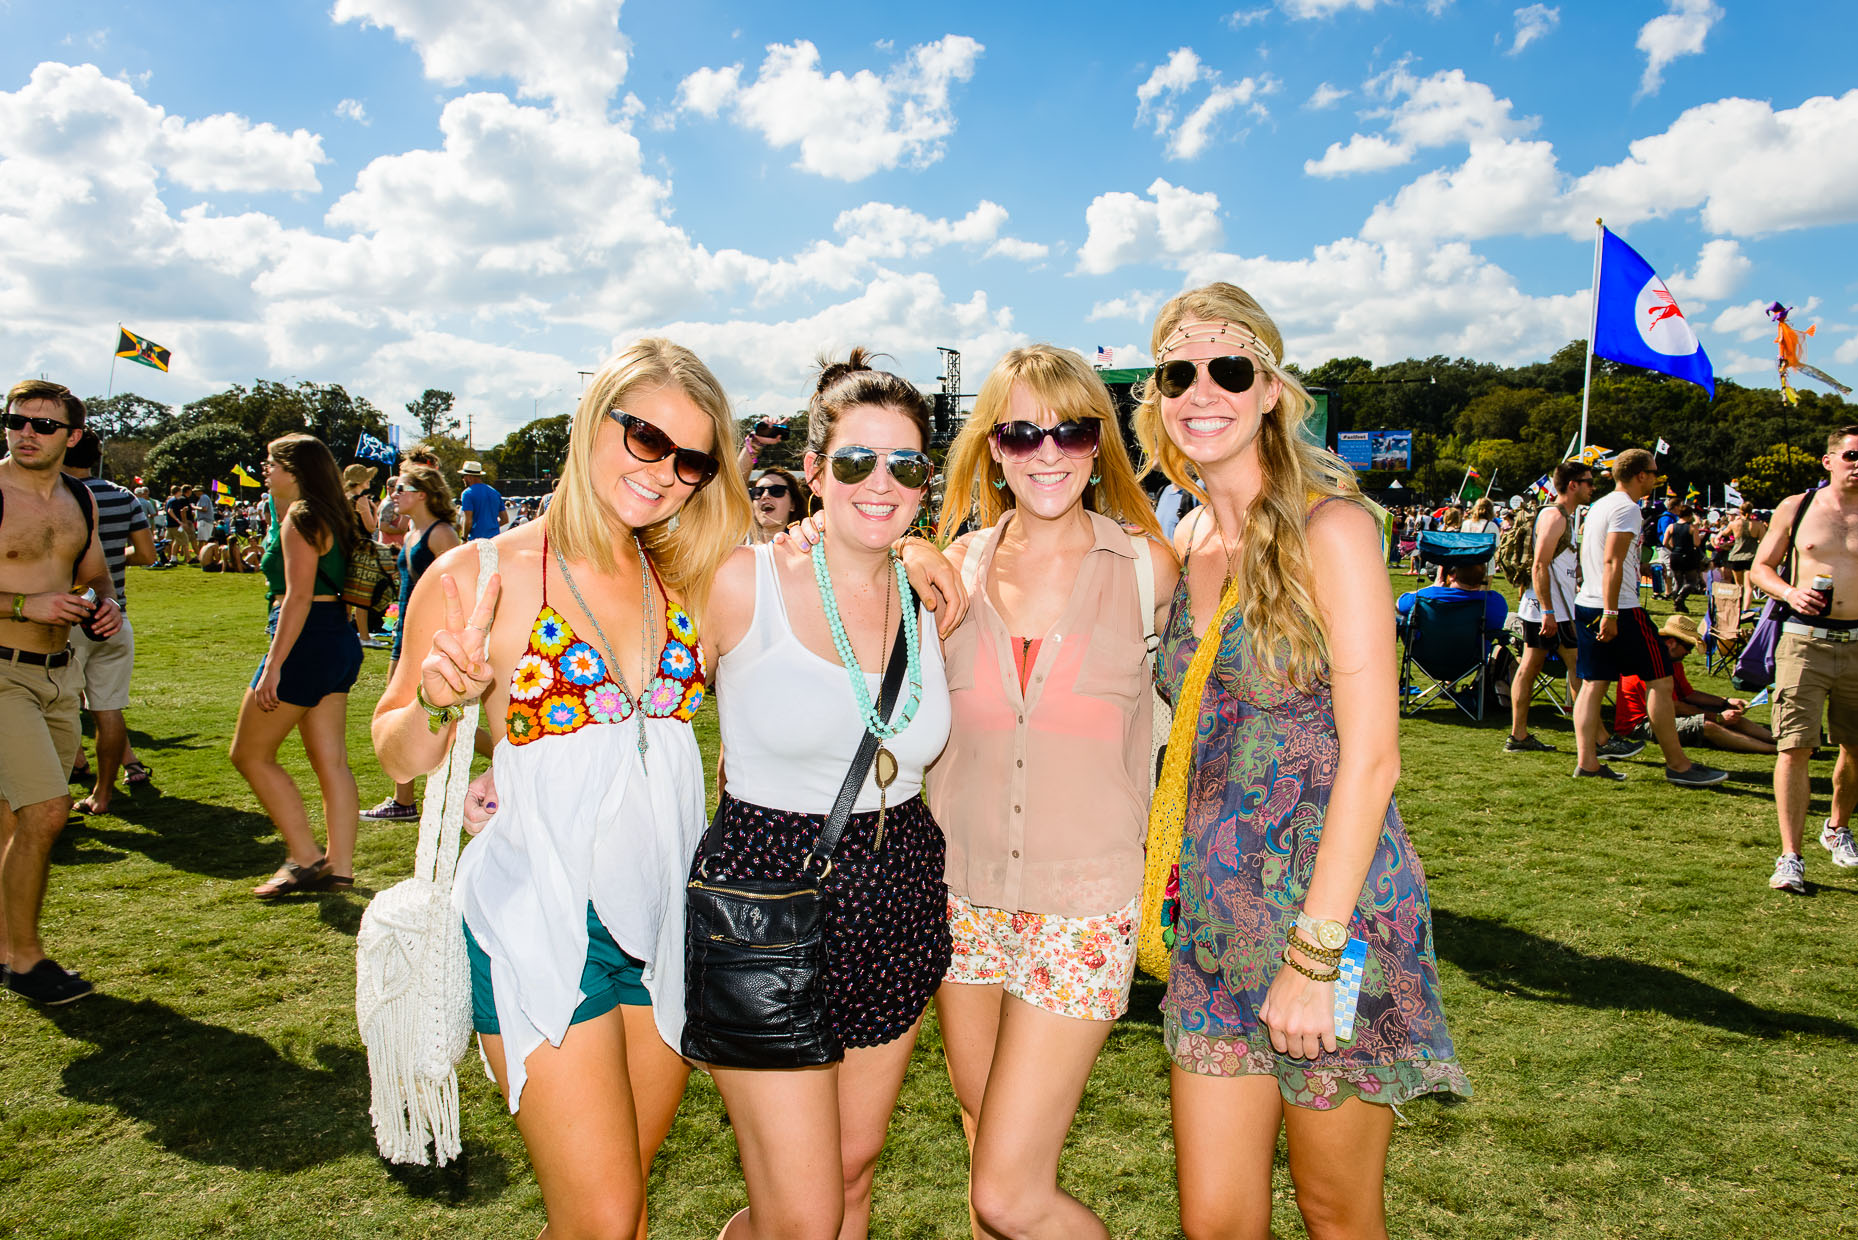 Austin-City-Limits-Music-Festival-Photographer-ACL.jpg